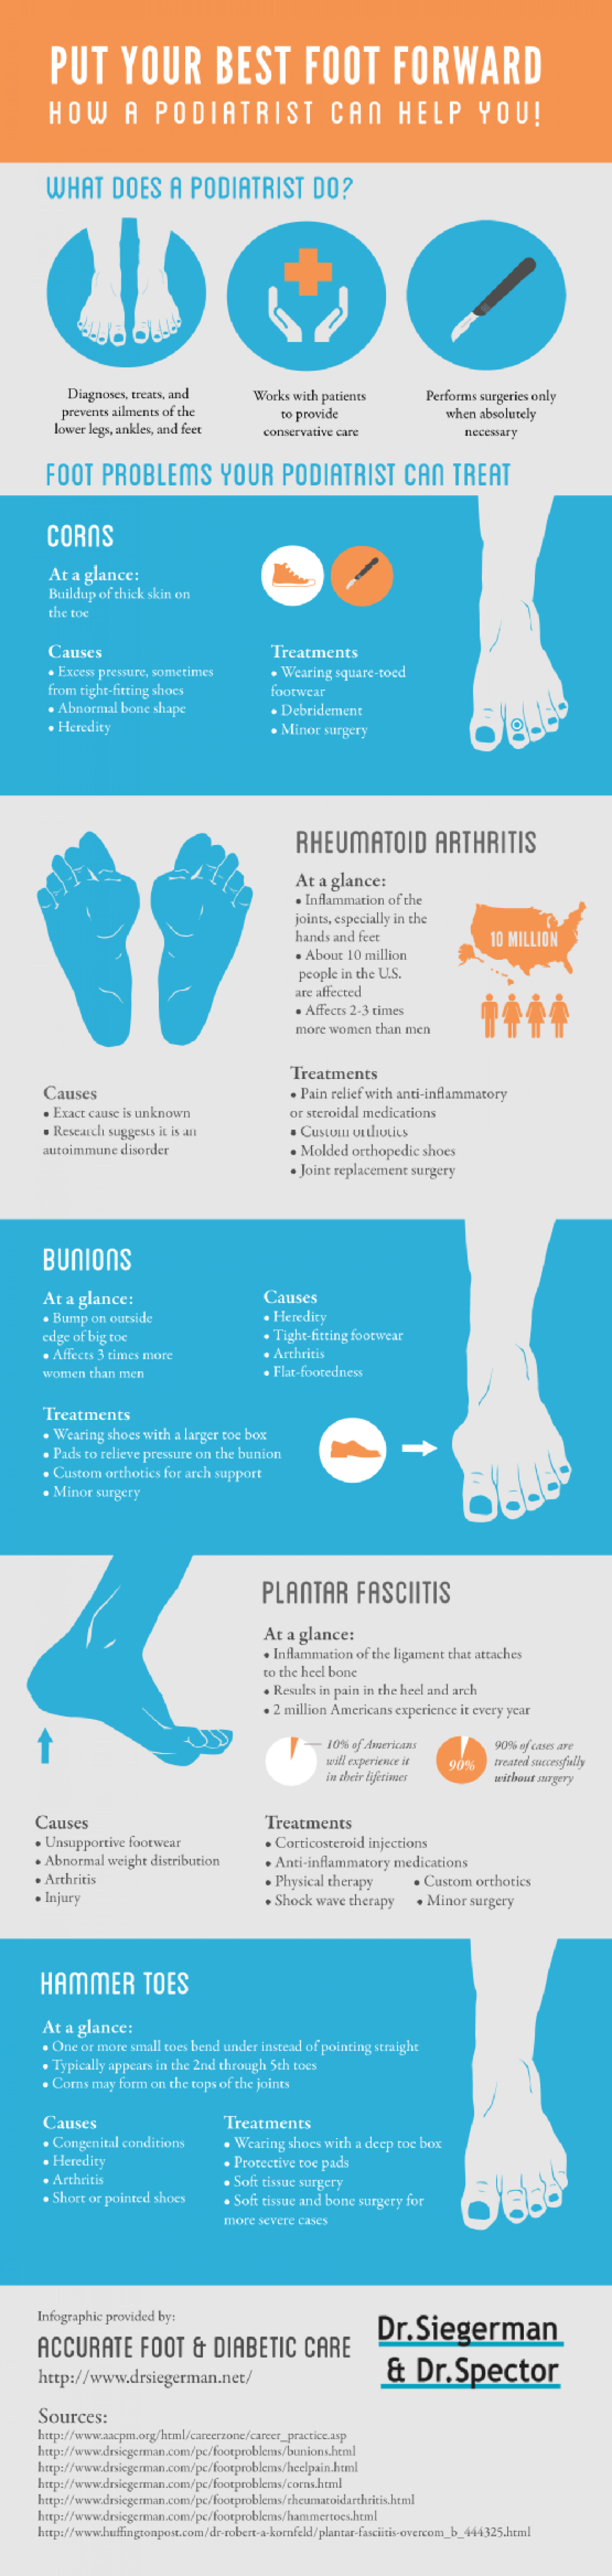 Put Your Best Foot Forward: How a Podiatrist Can Help You! Infographic